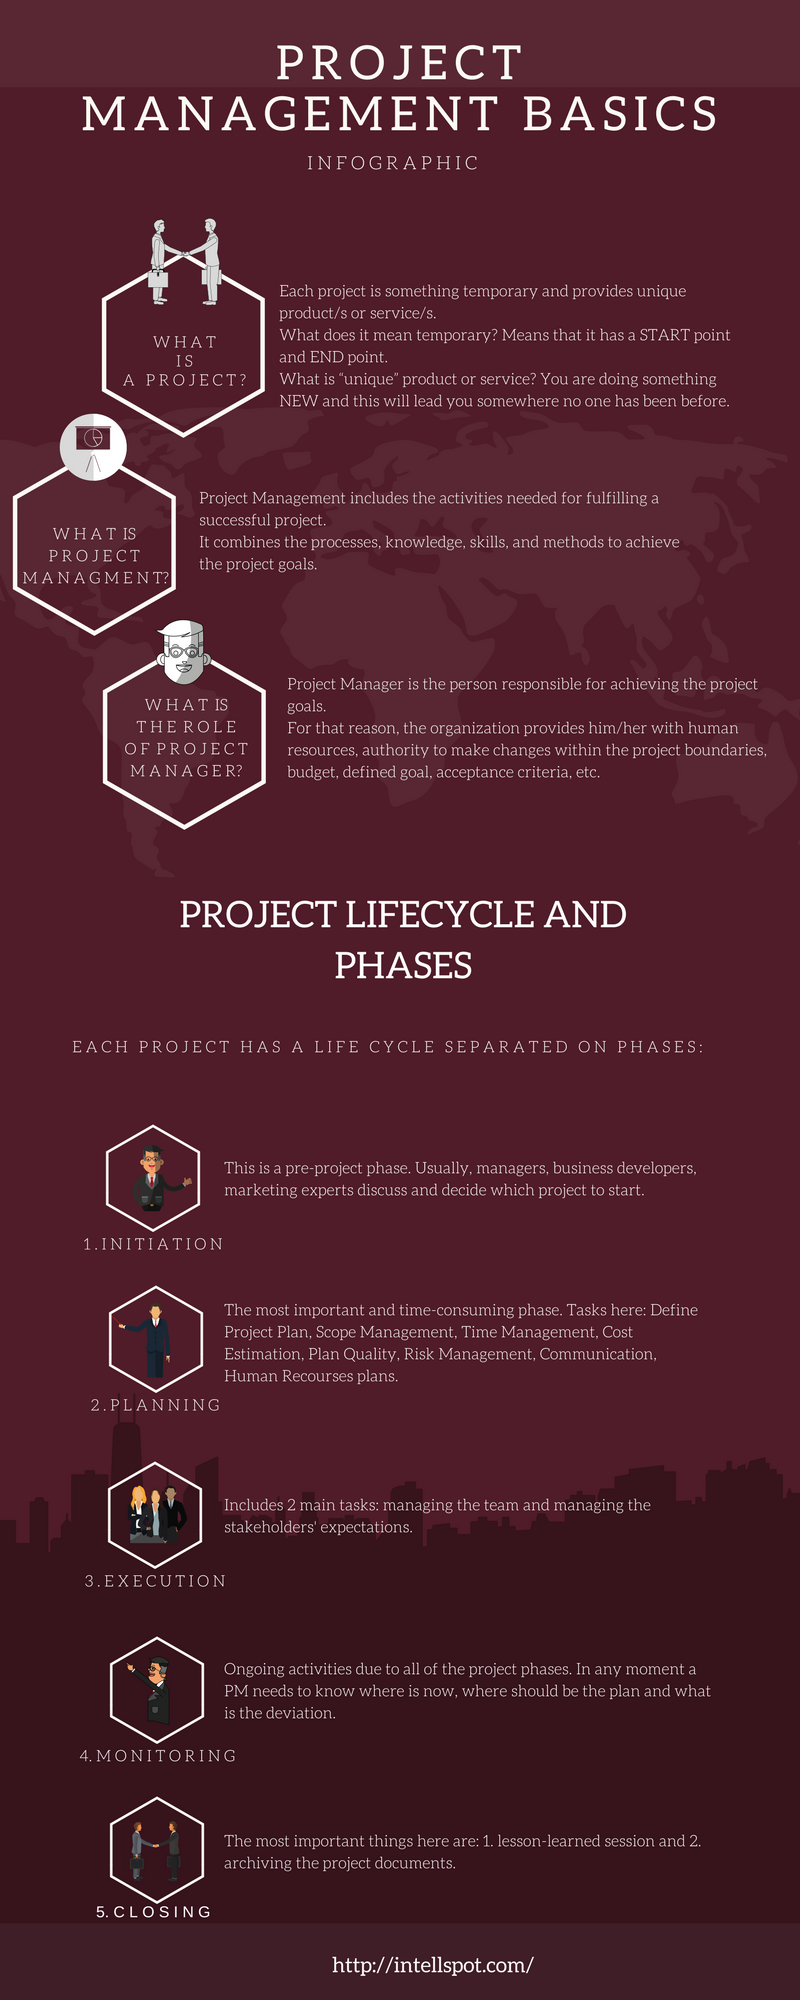 Project Management Basics Infographic page 1